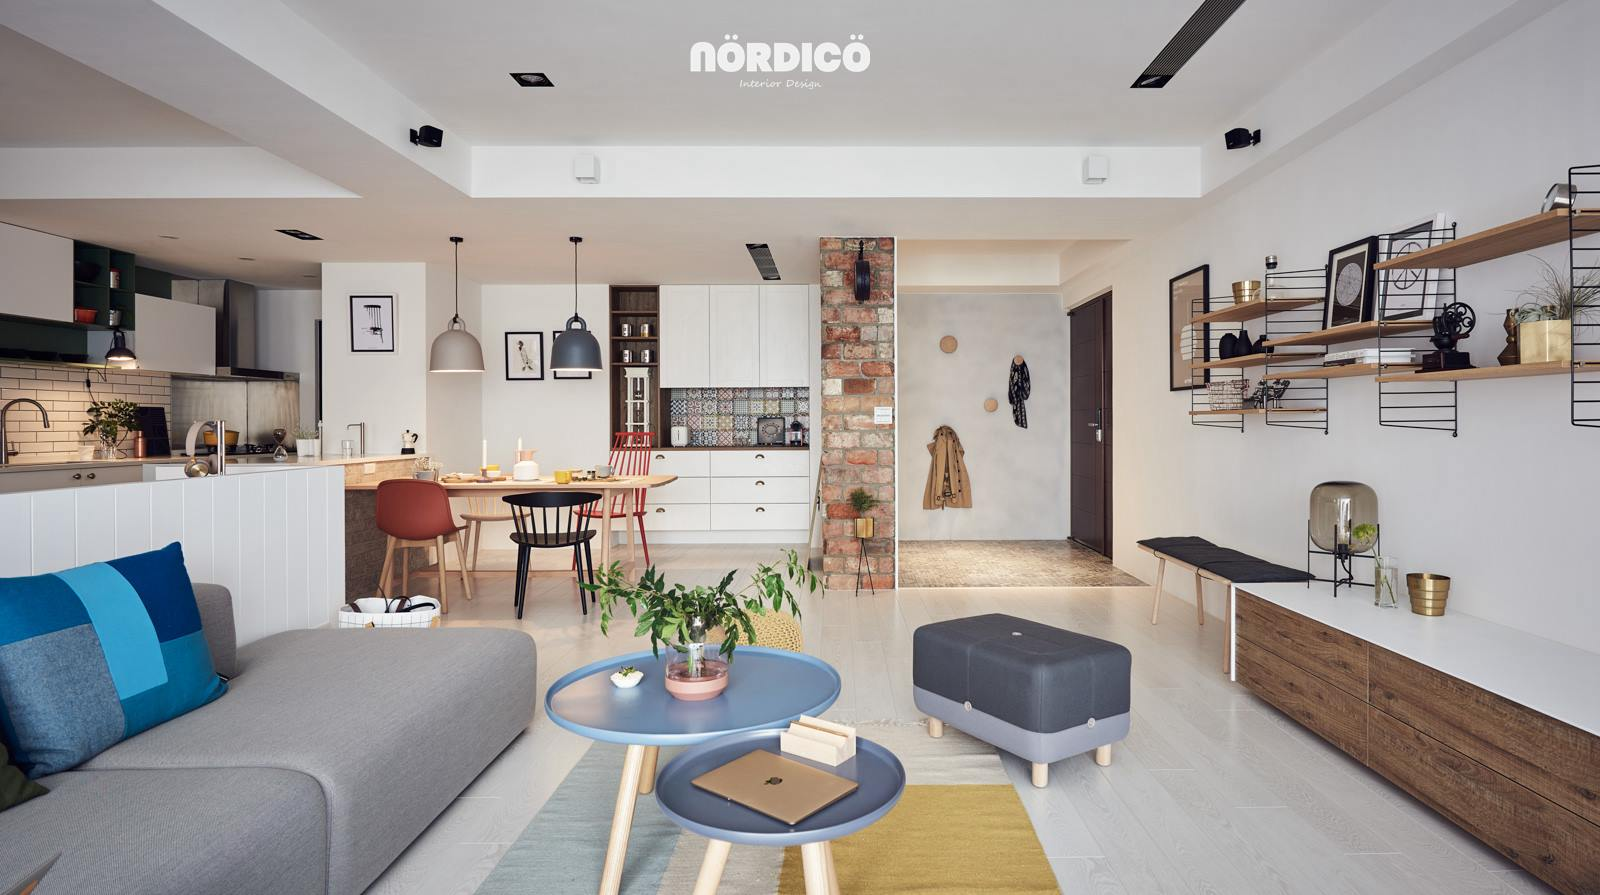 Nordic Design Furniture Nordic Living Room Designs Ideas By Nordico Roohome